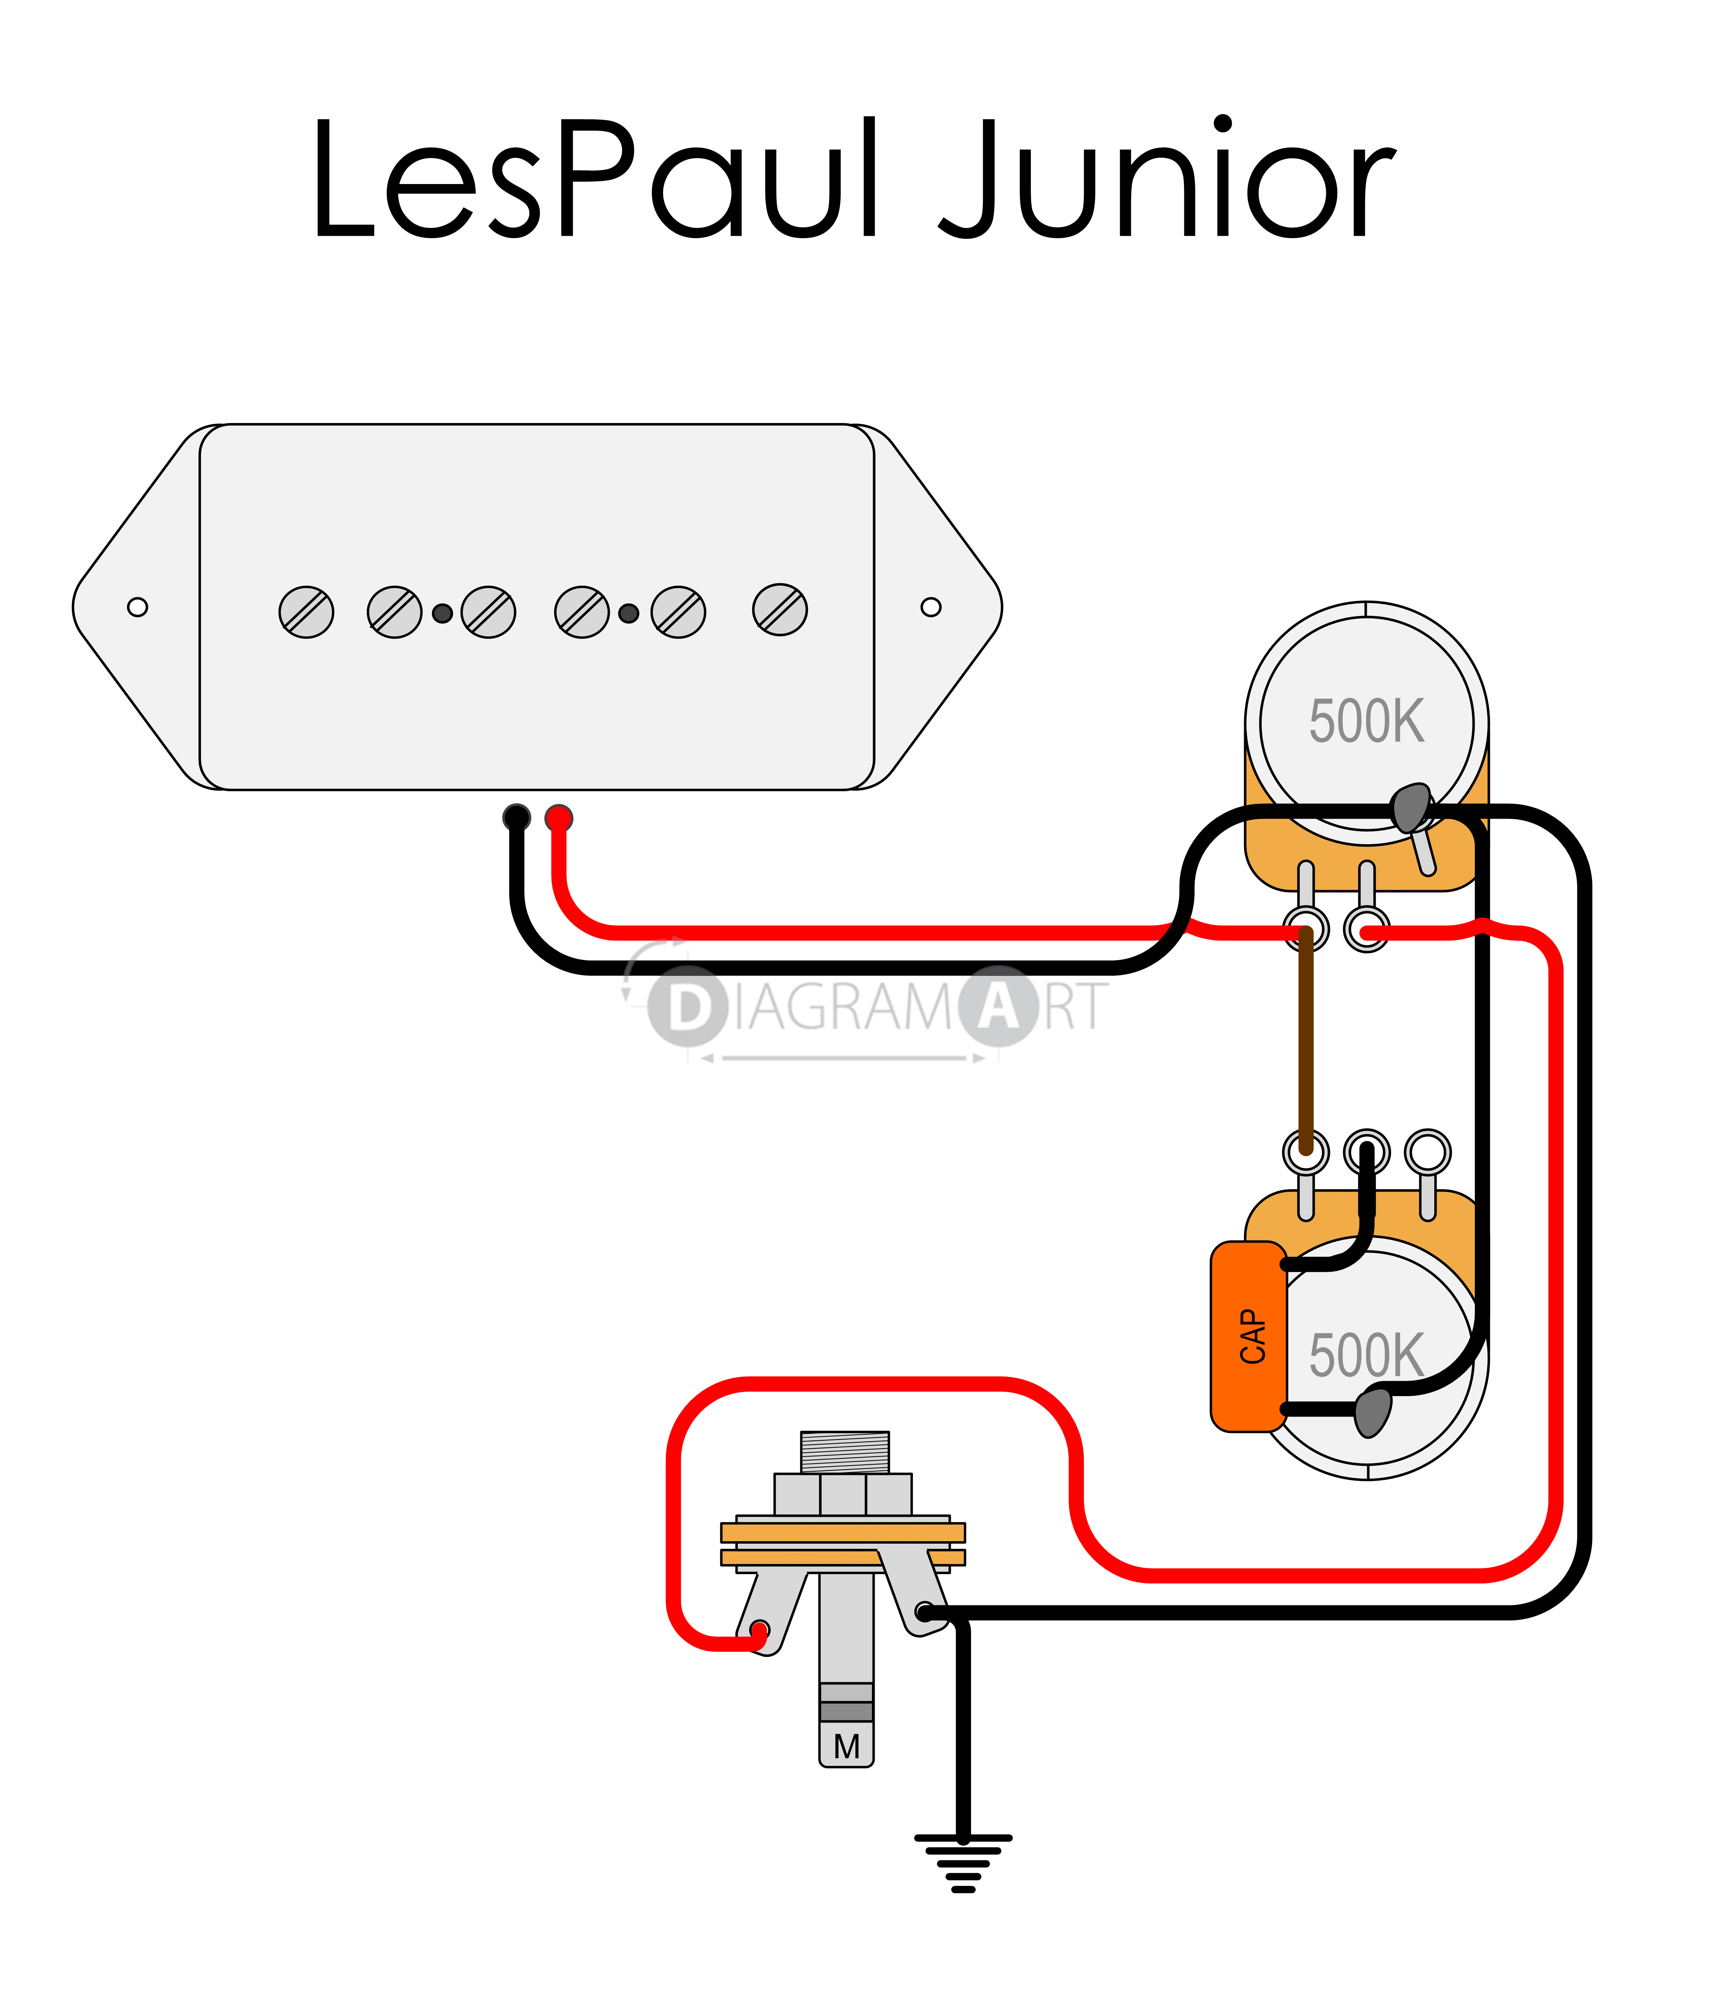 [FPWZ_2684]  E52A1 1957 Les Paul Wiring Diagram | Wiring Resources | Junior Les Paul Wiring Diagram |  | Wiring Resources